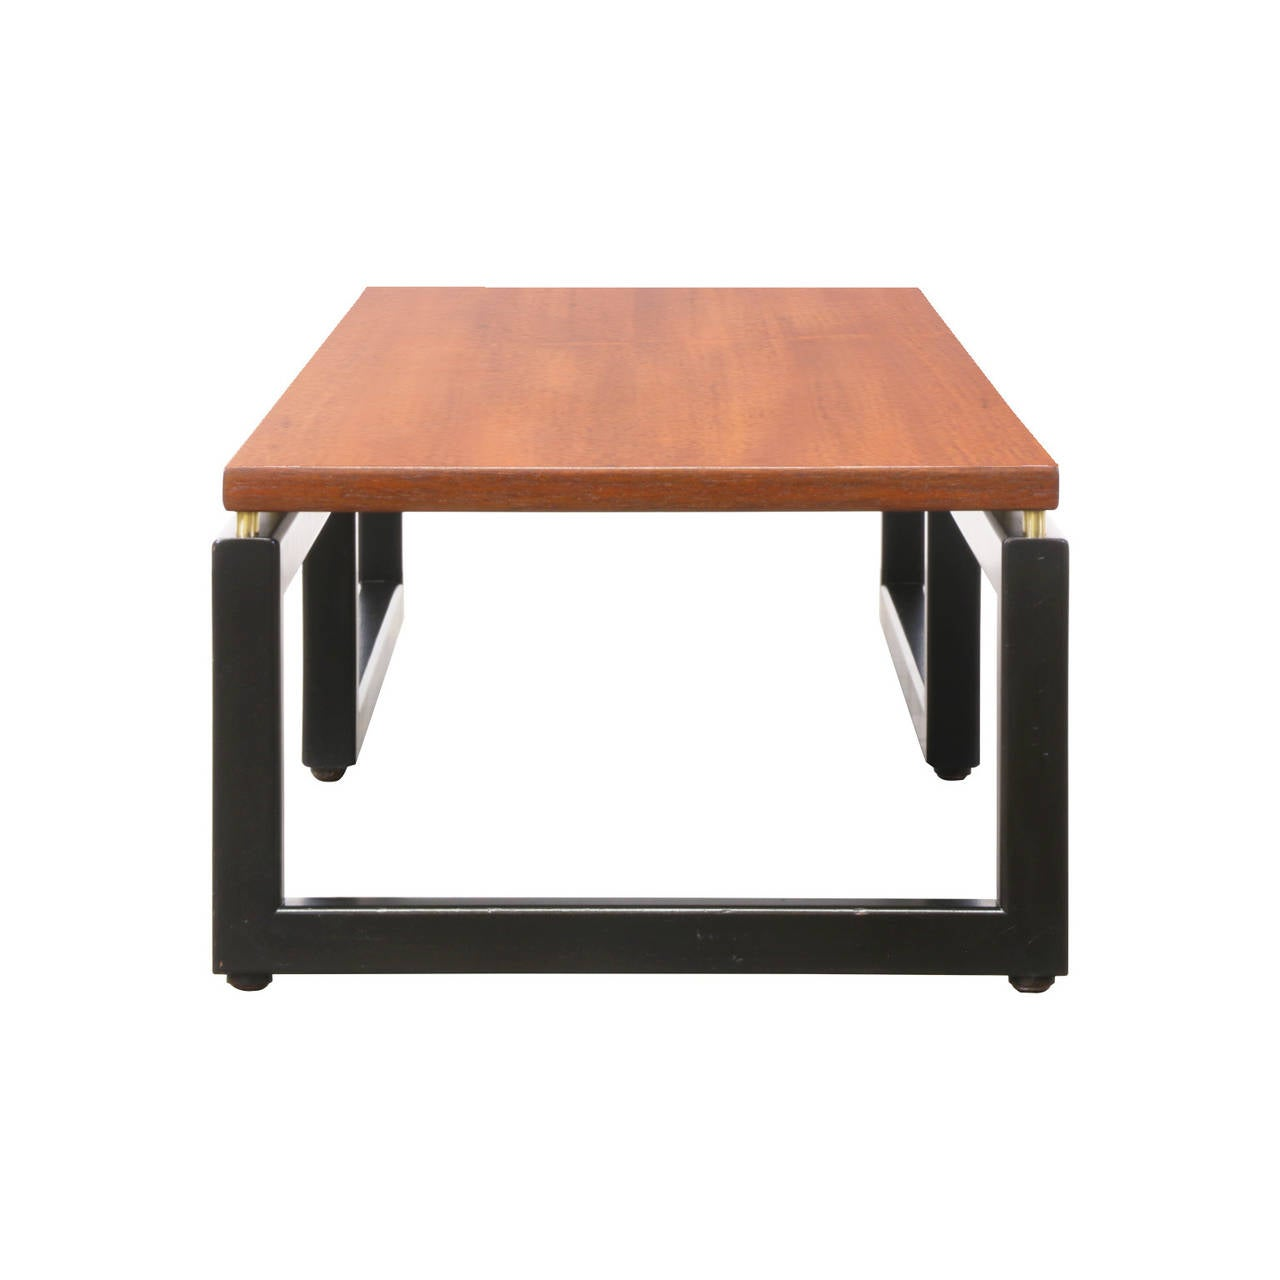 Michael Taylor New World Low Profile Coffee Table For Baker At 1stdibs